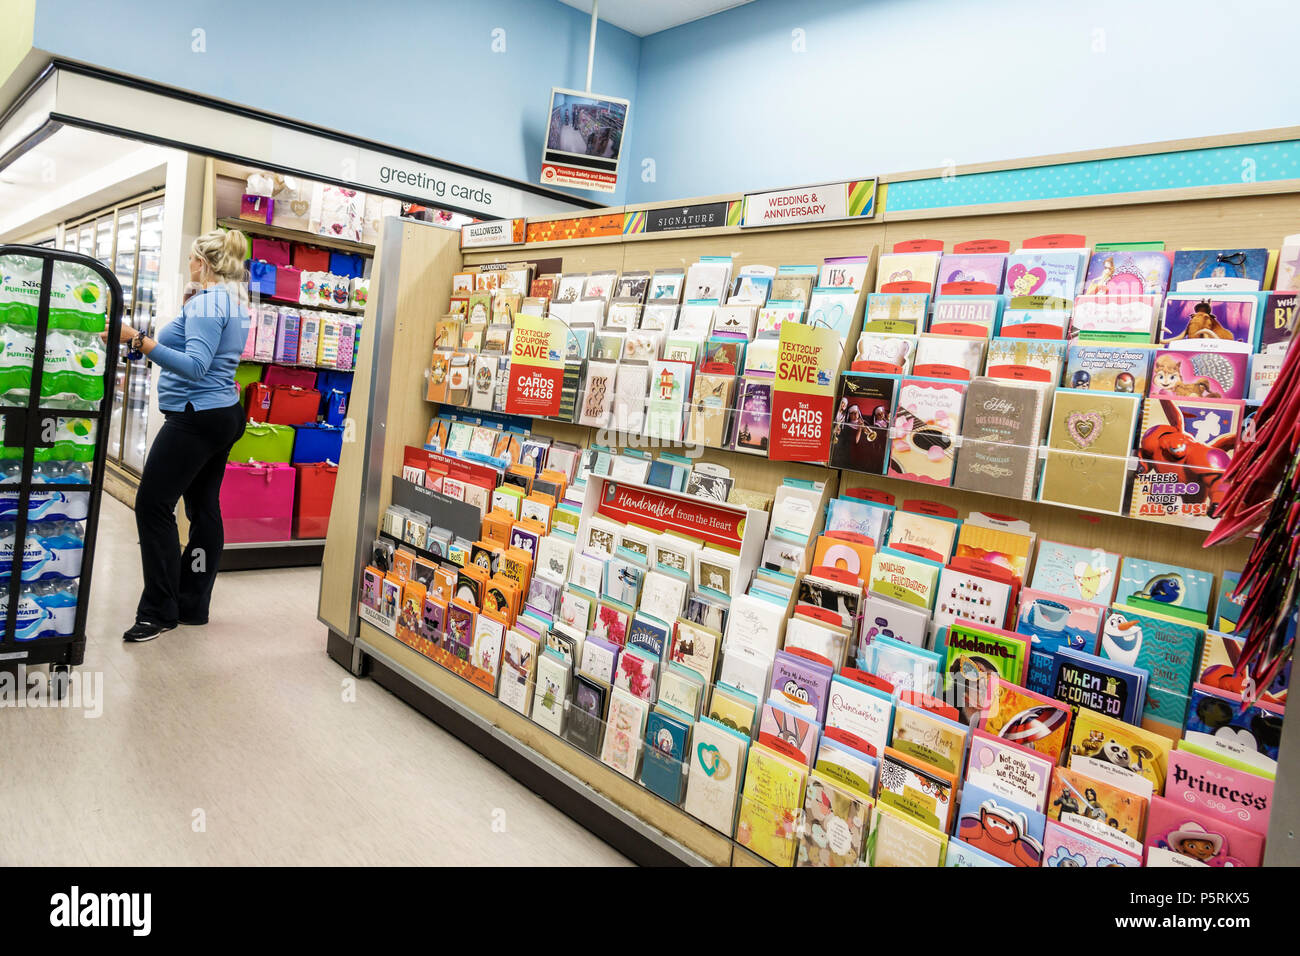 Miami beach florida walgreens pharmacy drugstore interior shopping miami beach florida walgreens pharmacy drugstore interior shopping stationery greeting cards woman worker stock clerk employee display sale m4hsunfo